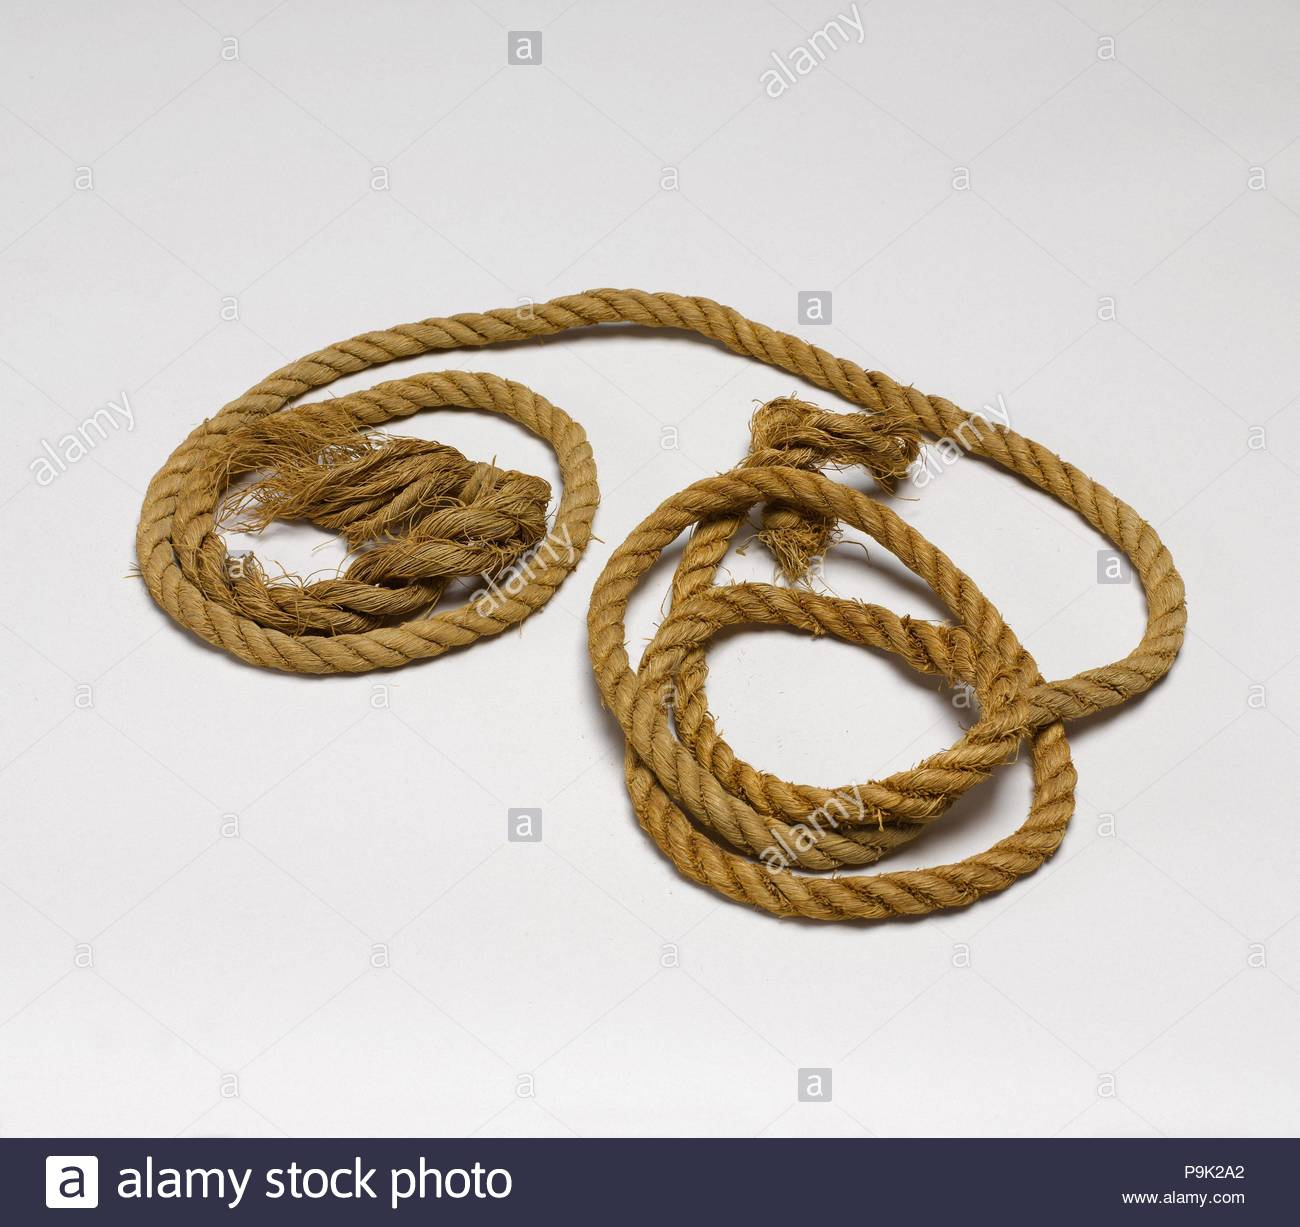 Rope, Middle Kingdom, Dynasty 11, ca. 2030–1640 B.C., From Egypt, Upper Egypt, Thebes, Deir el-Bahri, Tomb of Aashyt (DBXI.17), 1920–21, Linen, 256 cm long. - Stock Image